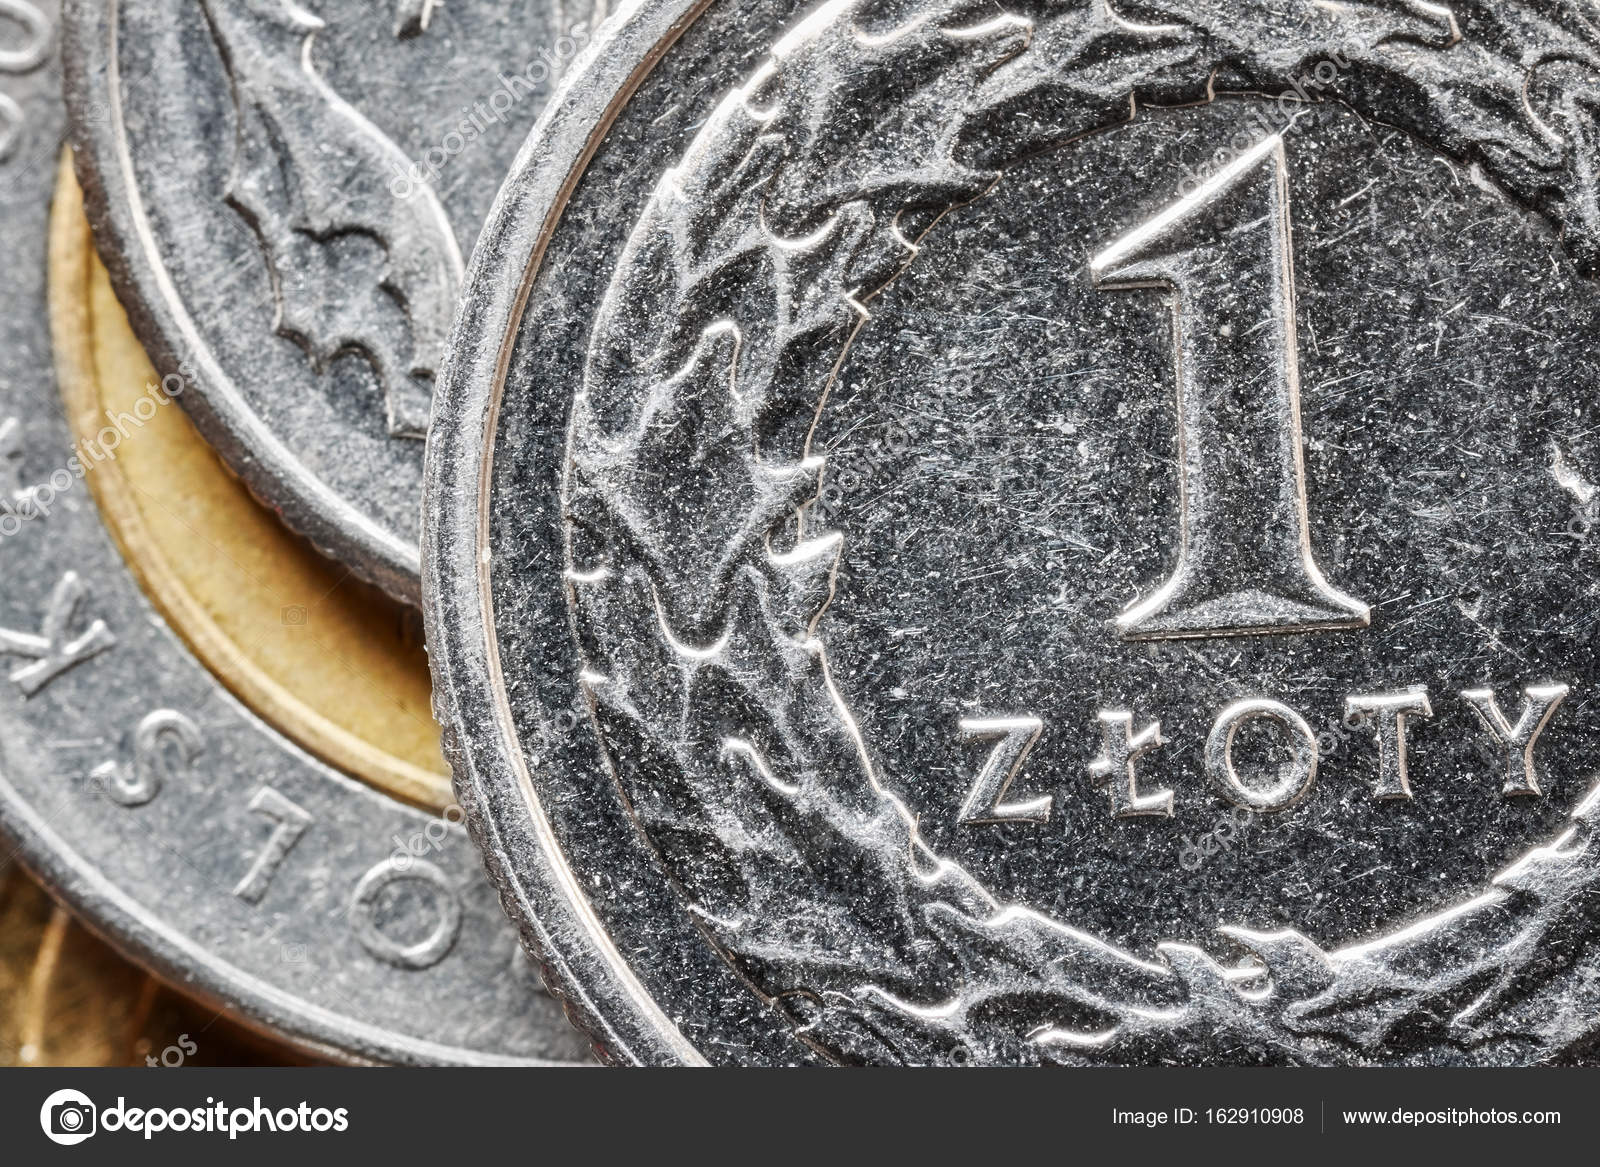 Extreme Close Up Picture Of Polish Zloty Coins Stock Photo